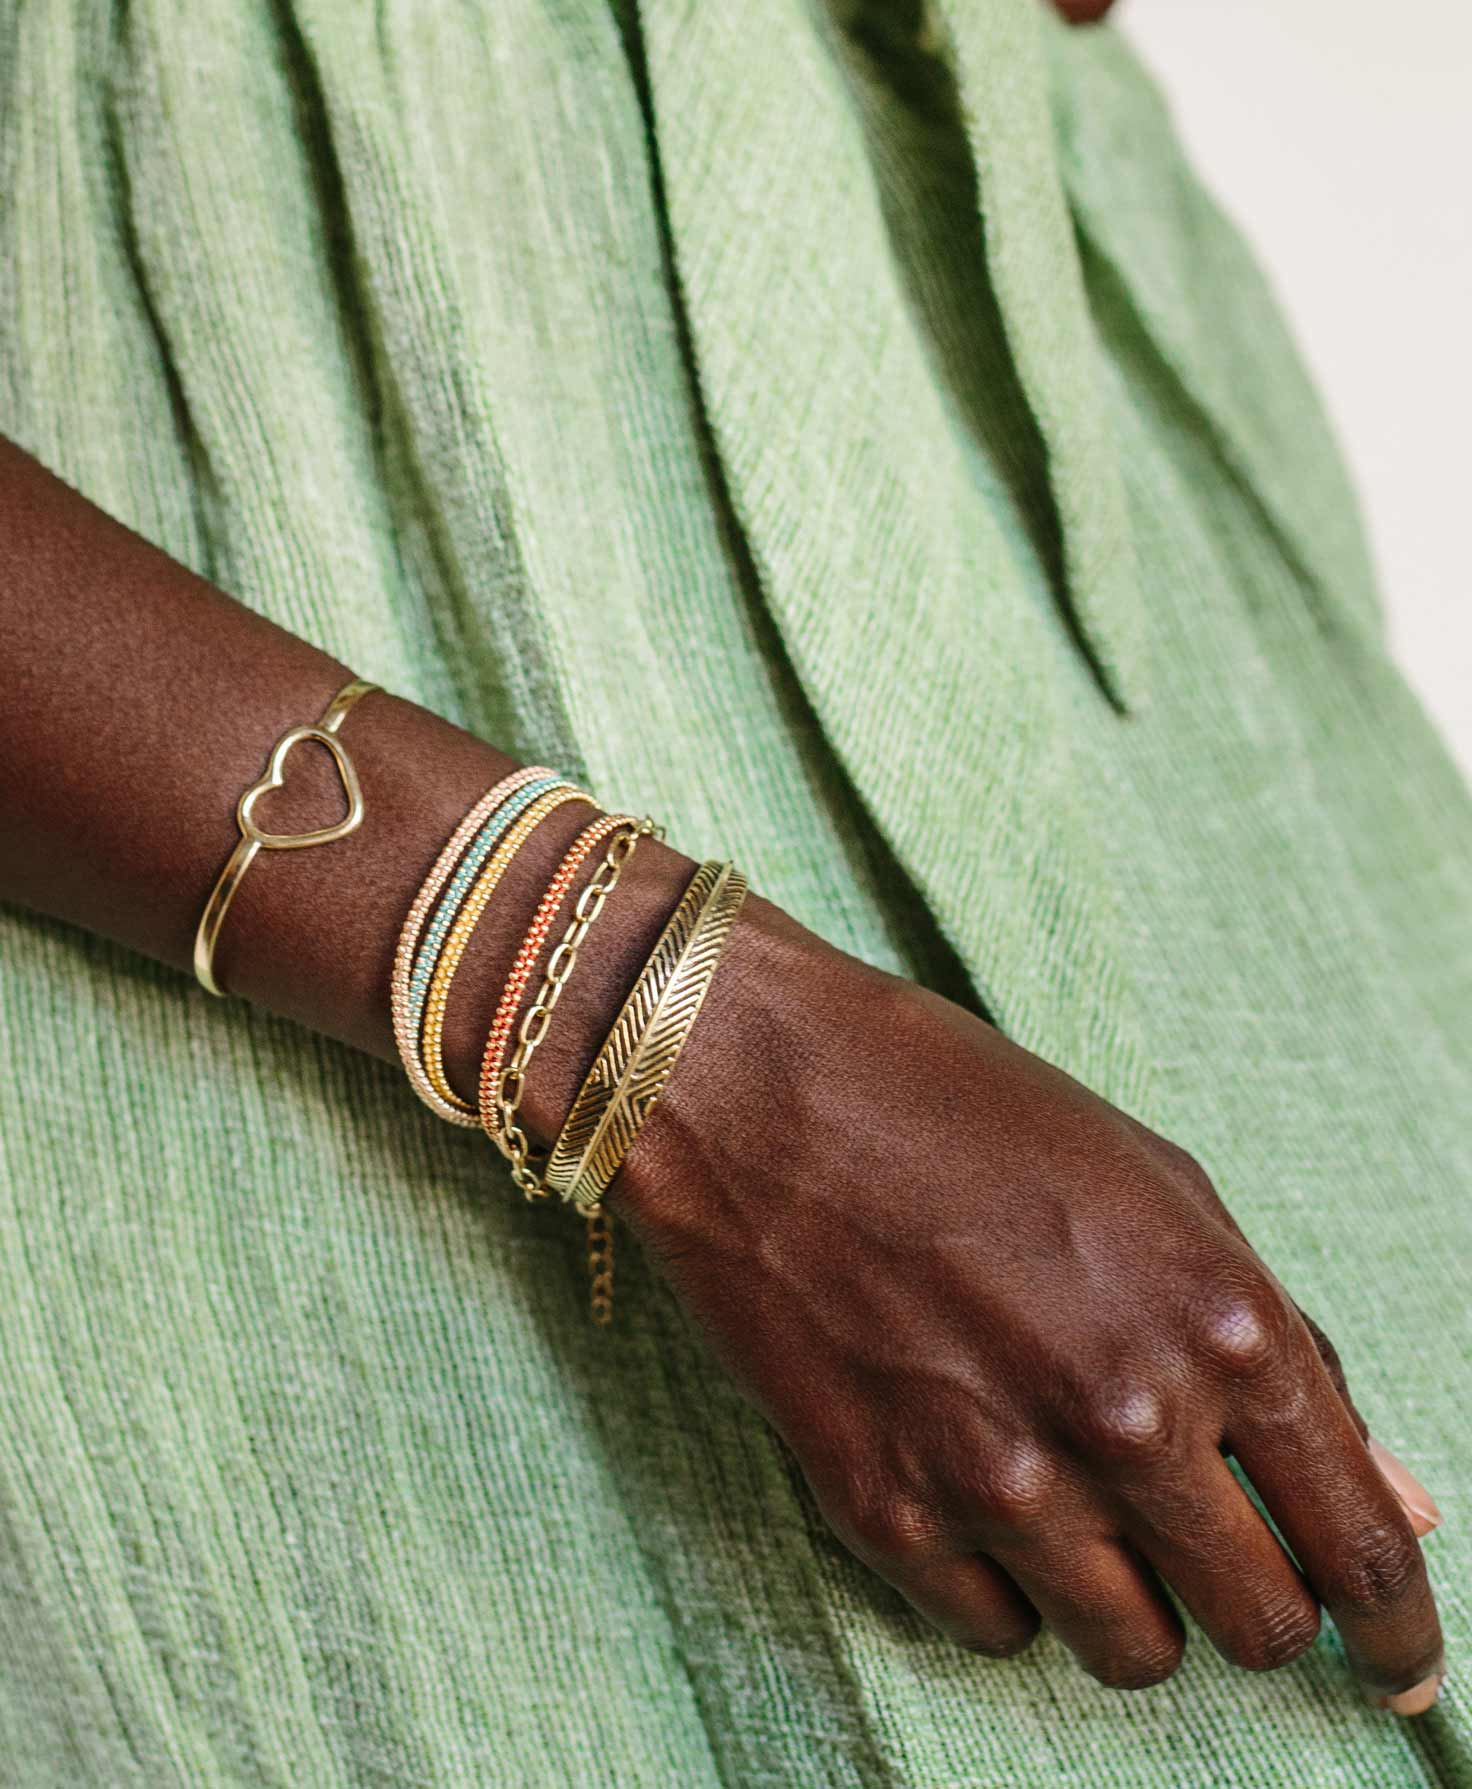 A model's arm is shown resting against her side. On her wrist she wears the Apex Cuff paired with a stack of other bracelets, including the Colorblock Wrap Bracelet, Expression Cuff, and Infinity Bracelet.